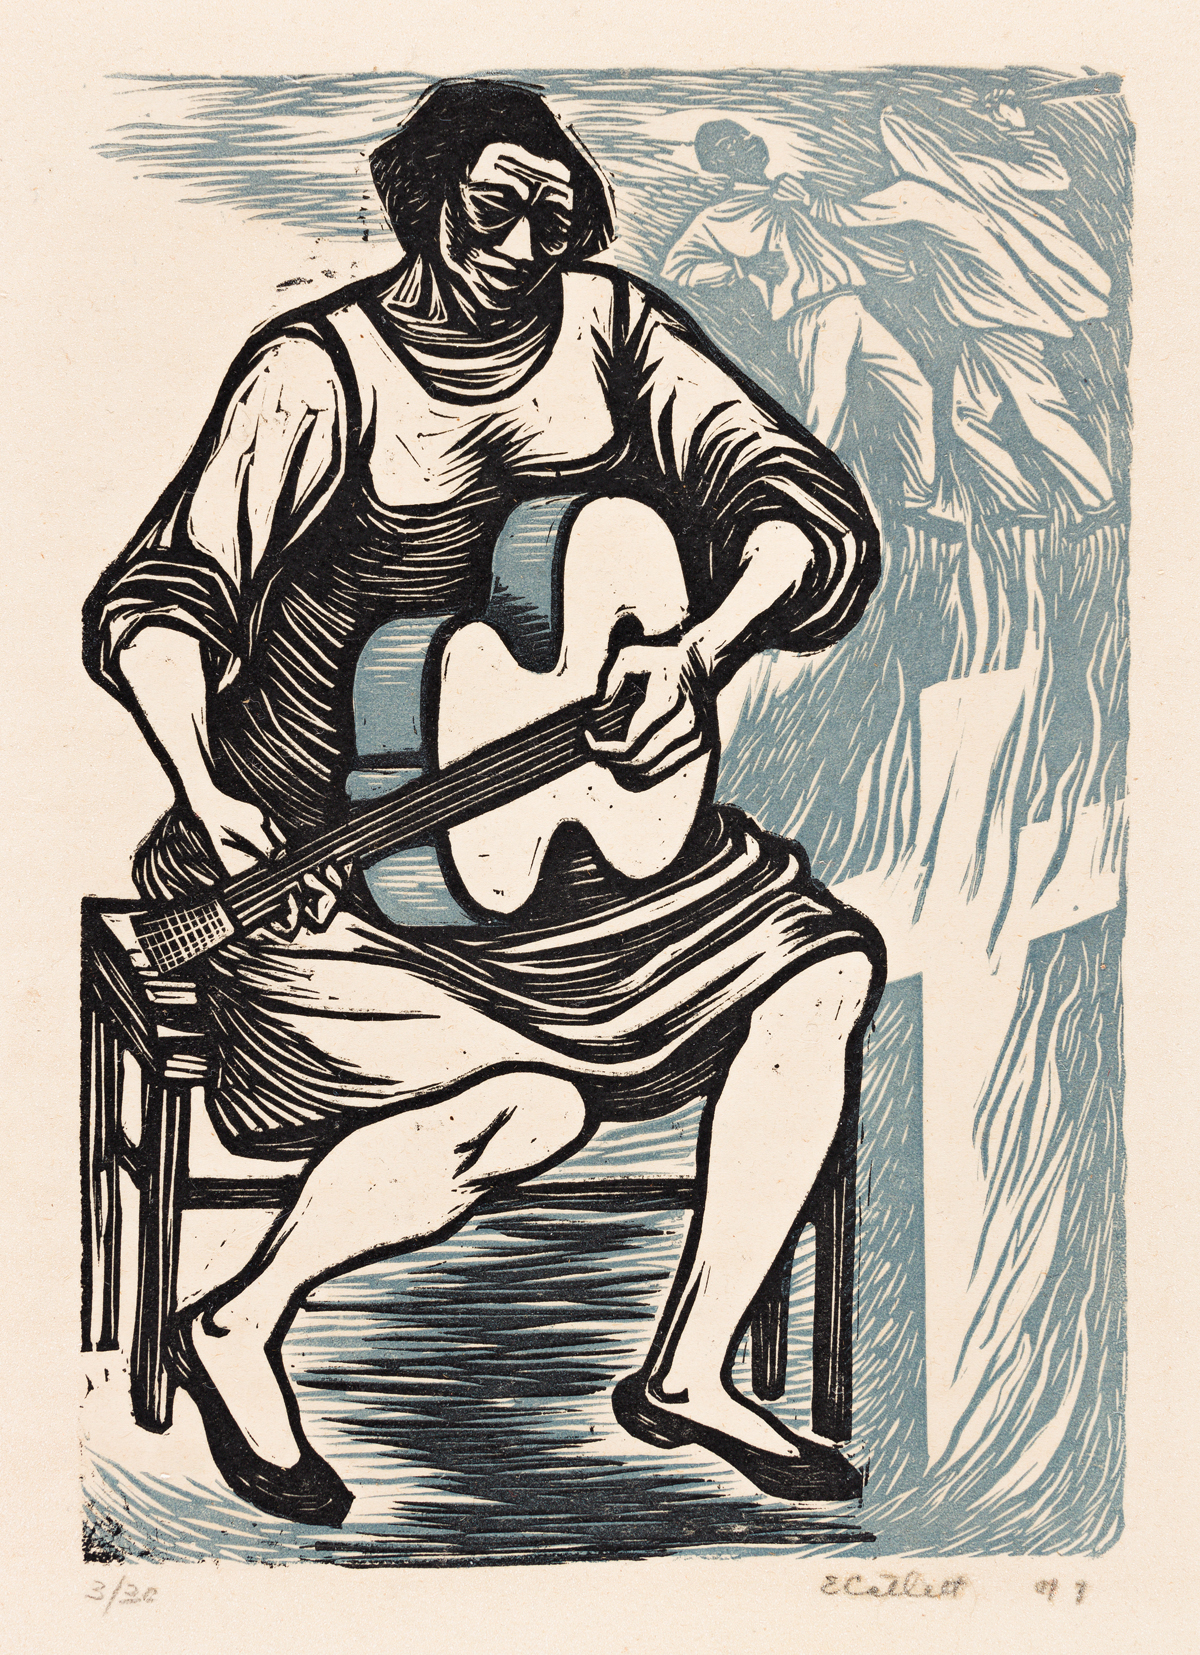 ELIZABETH CATLETT (1915 - 2012) I have given the world my songs.